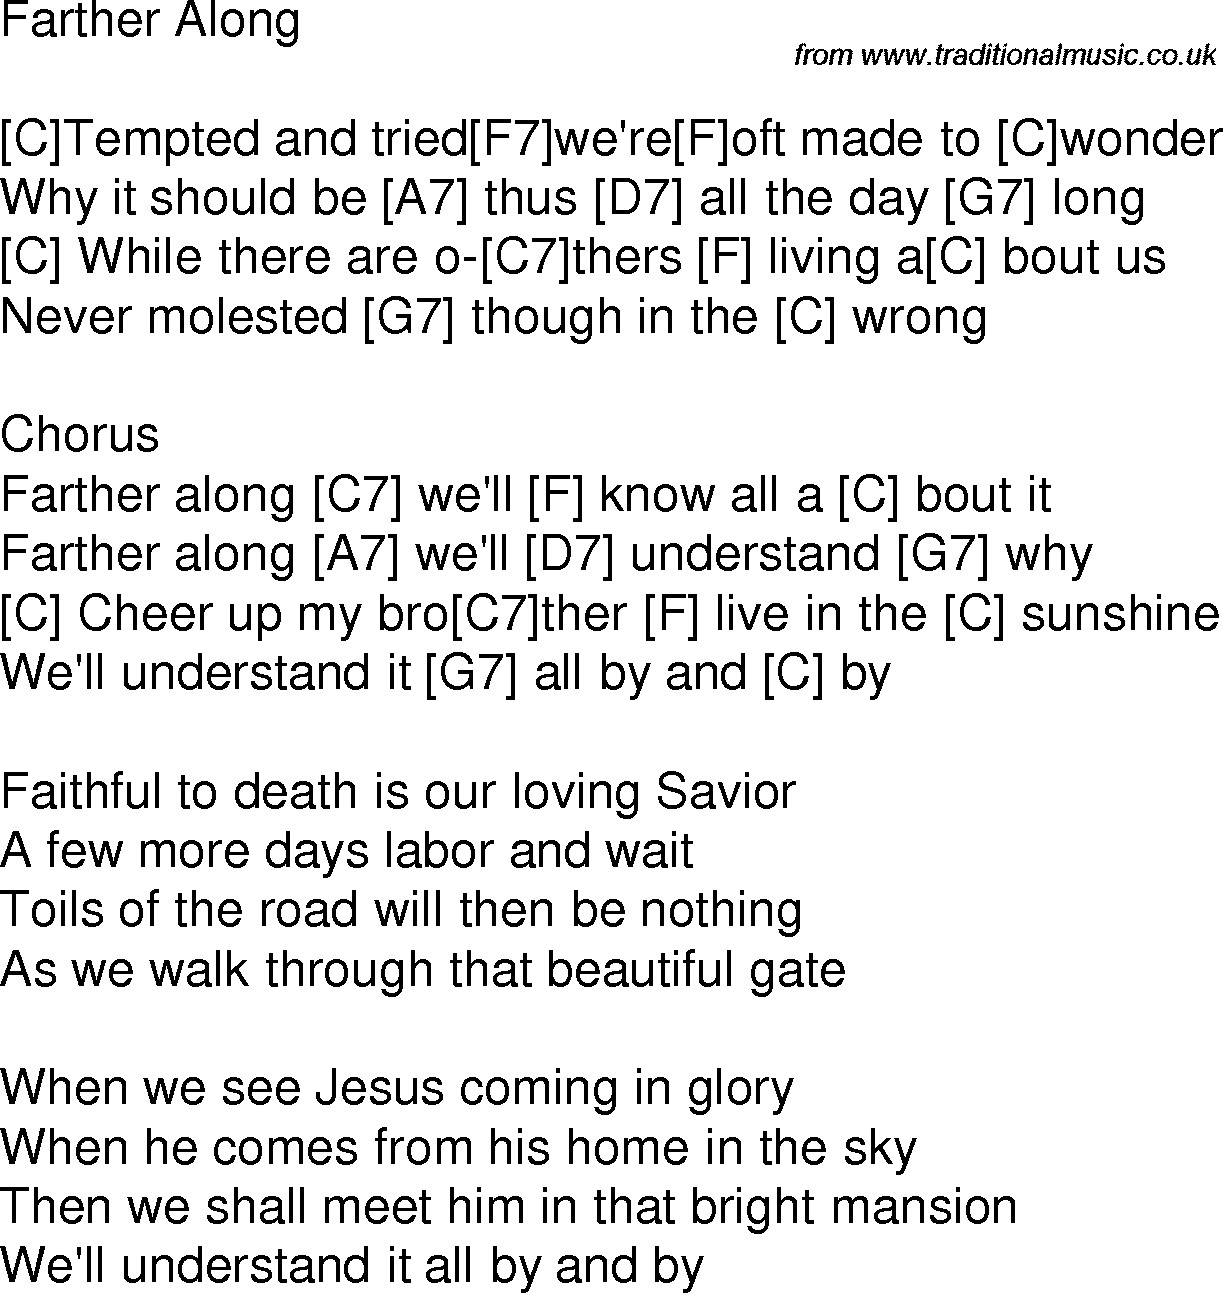 Old time song lyrics with guitar chords for farther along c old time song lyrics with chords for farther along c hexwebz Choice Image